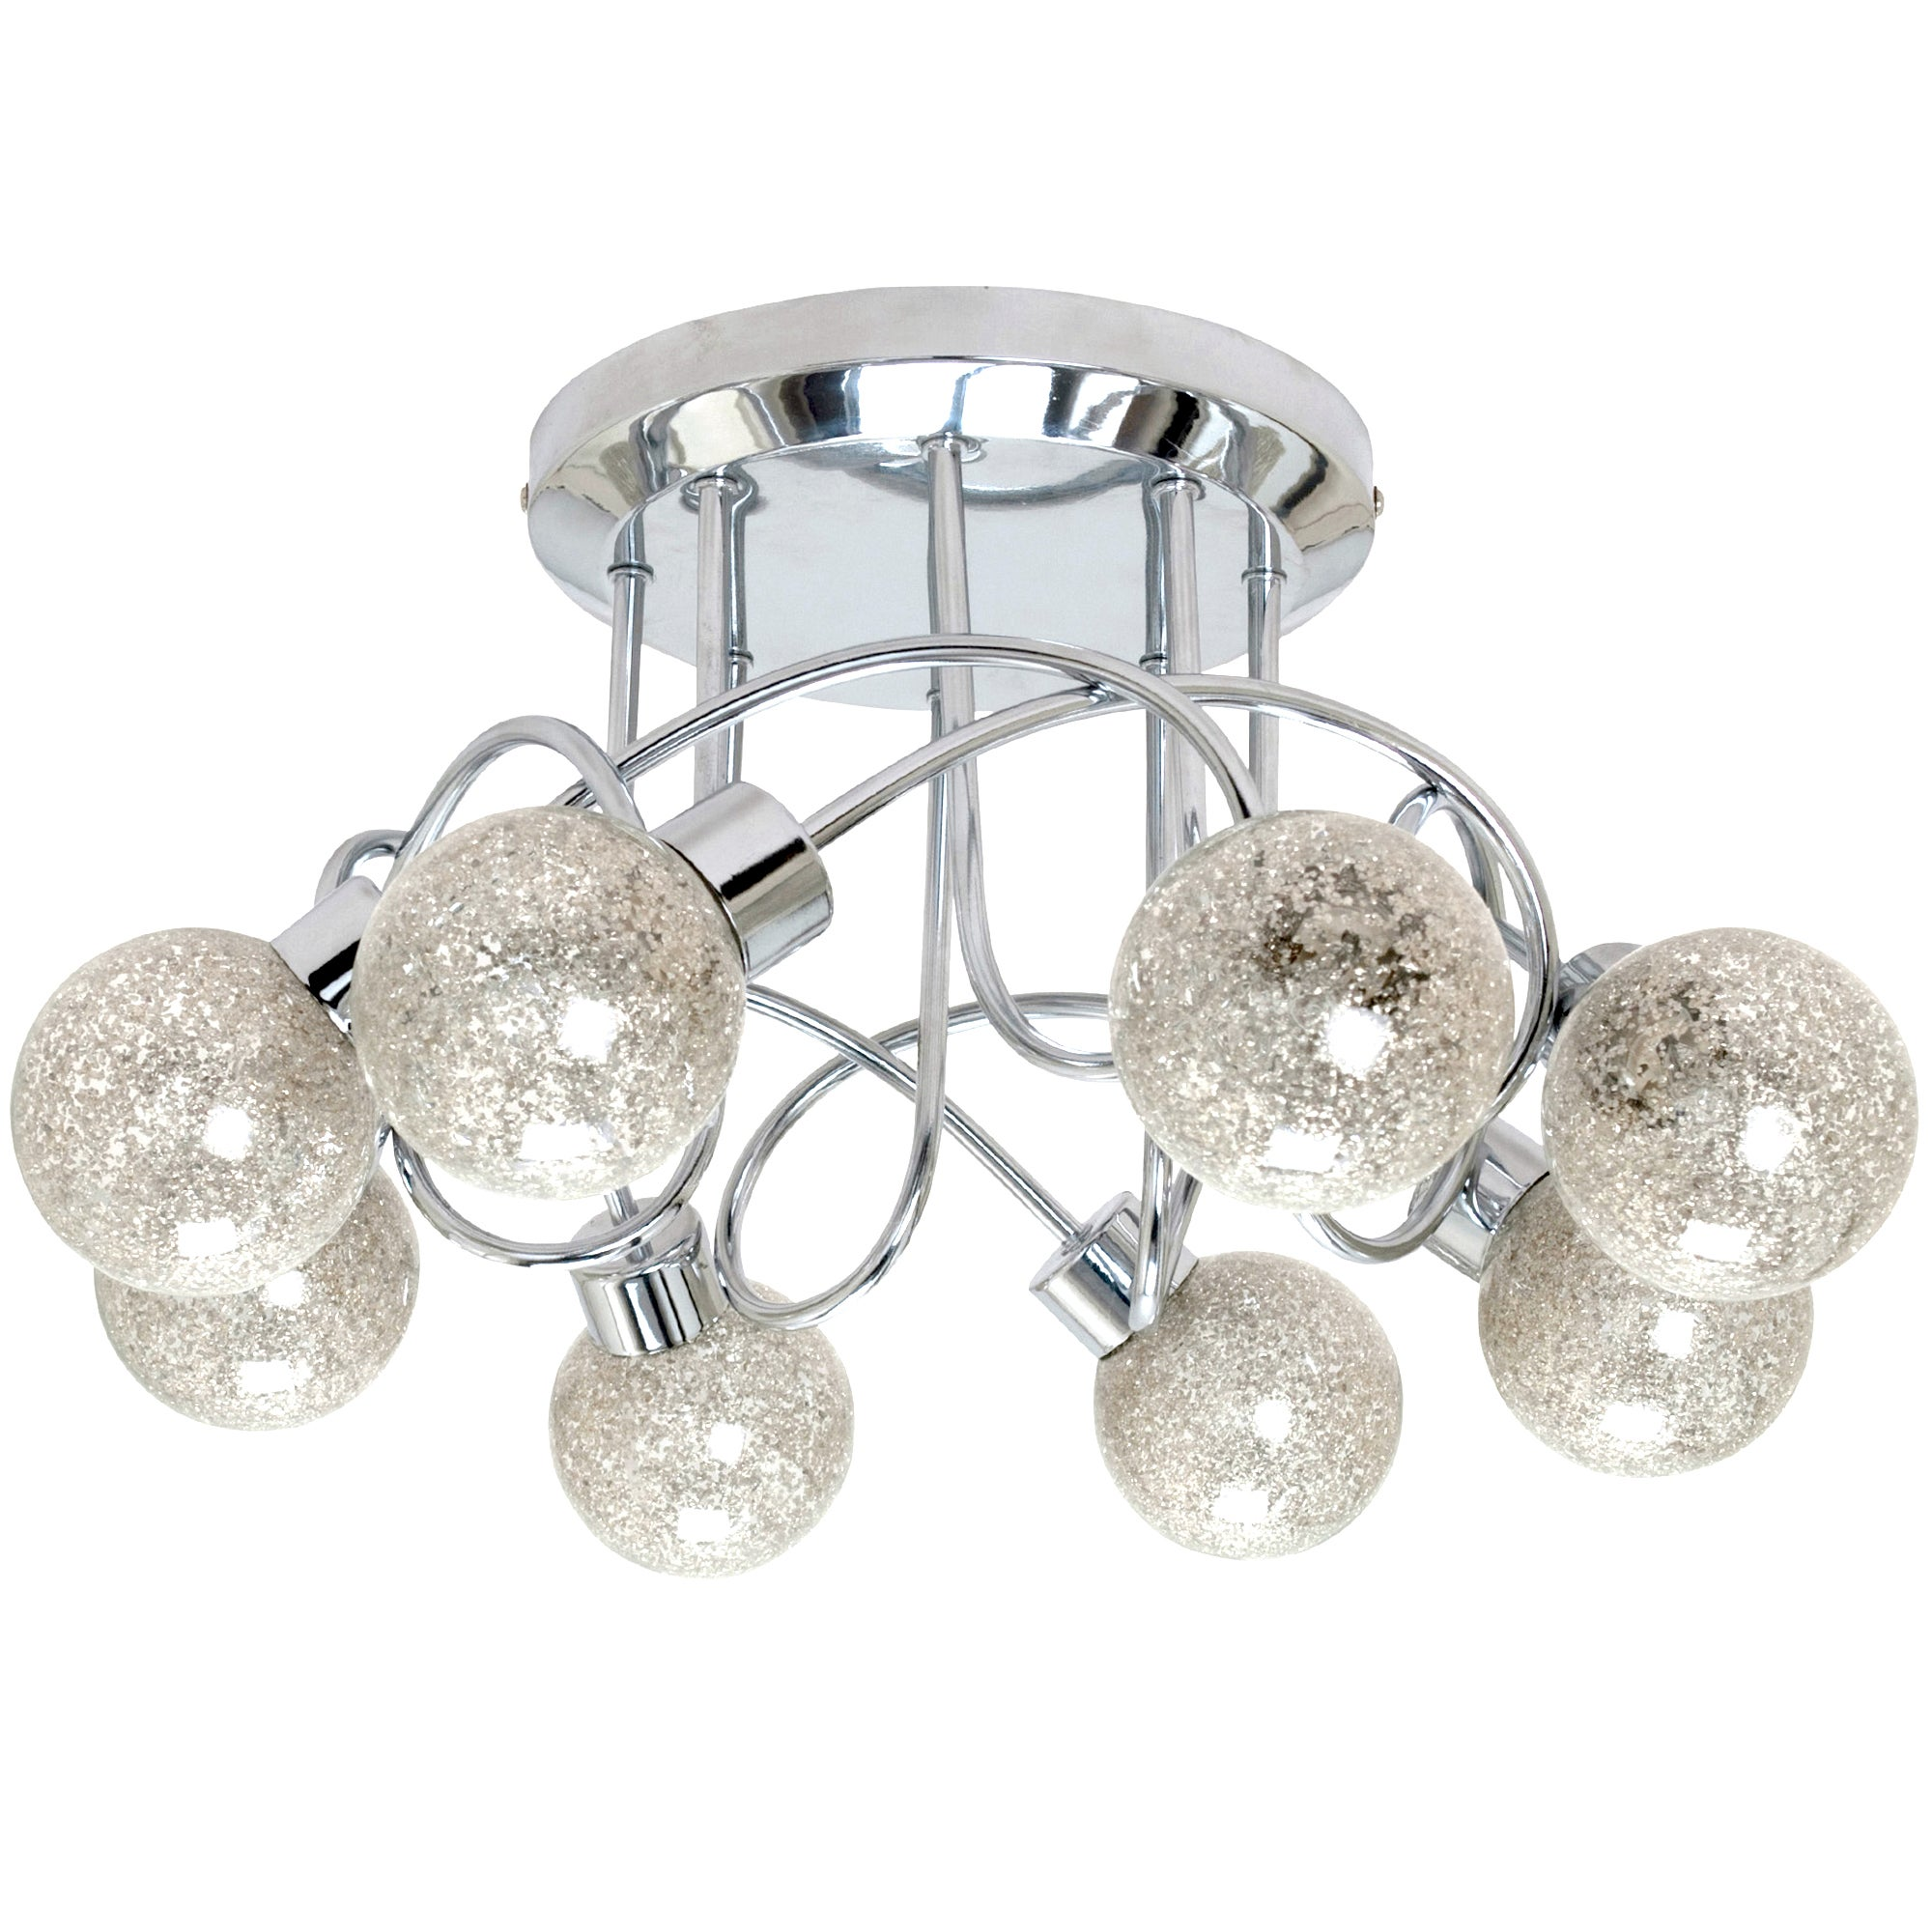 Compare Prices Lighting Products Dunelm On Costcrawler